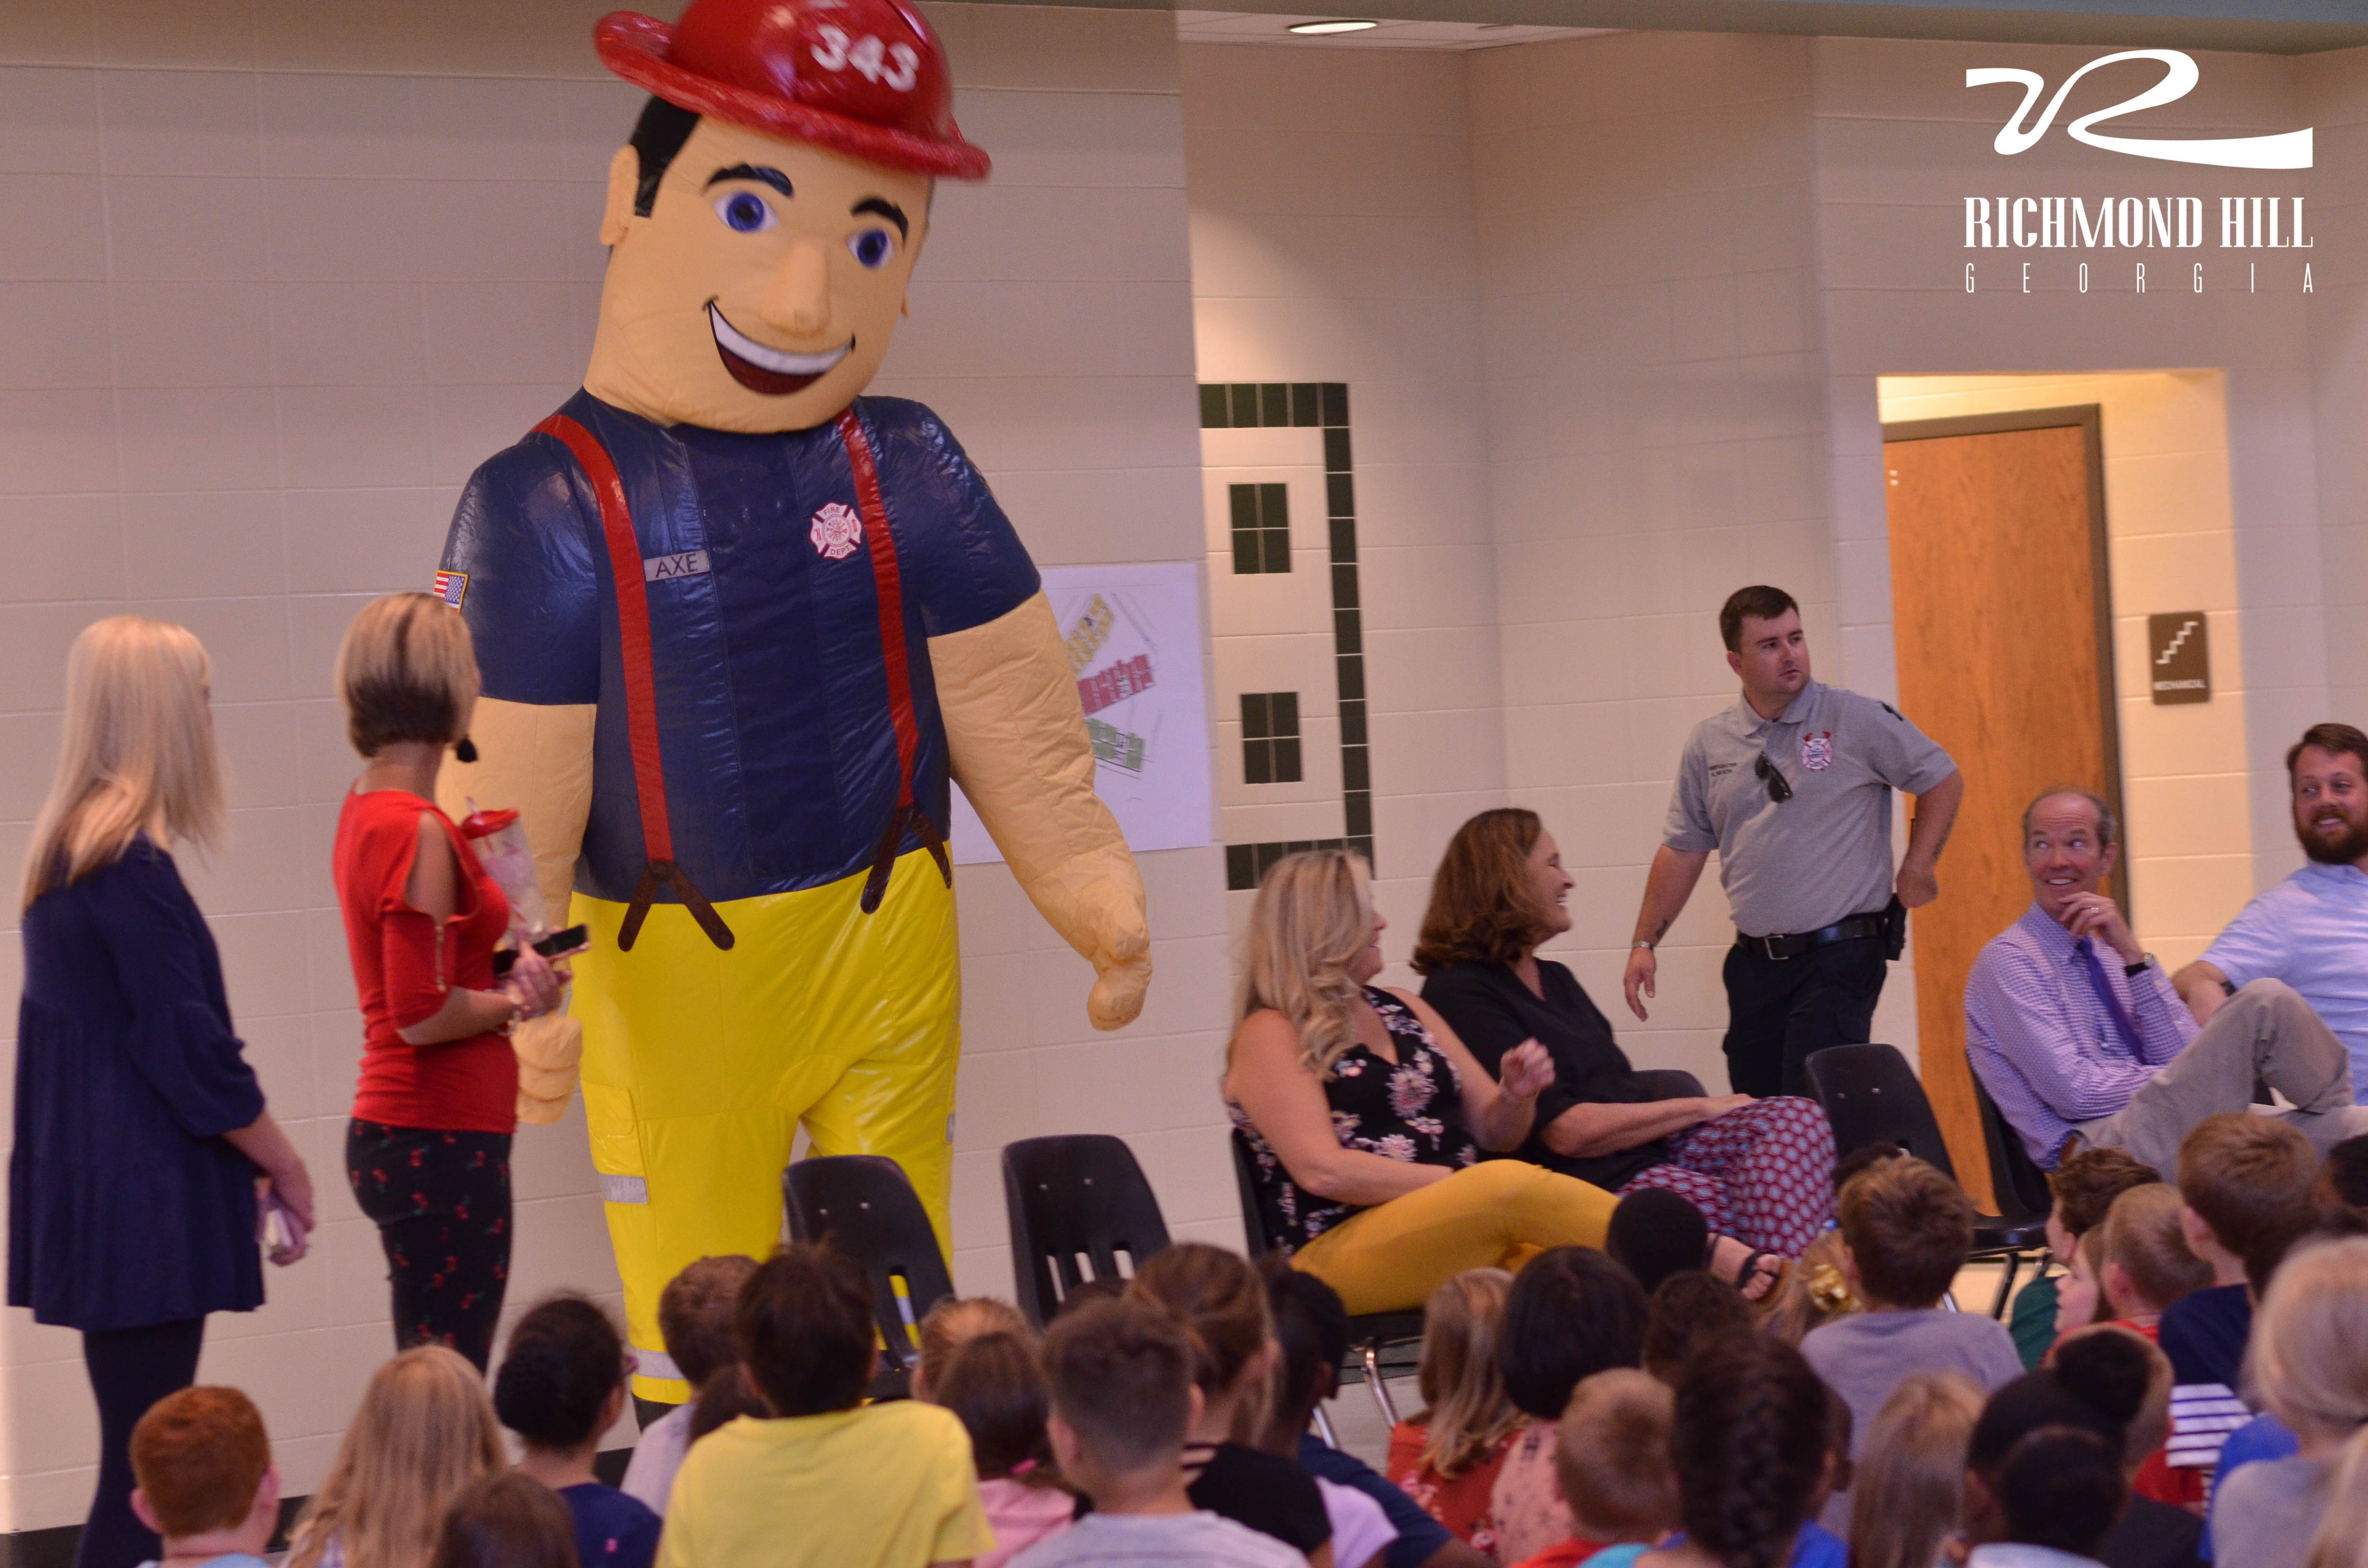 A large fire fighter mascot stands in front of a crowd